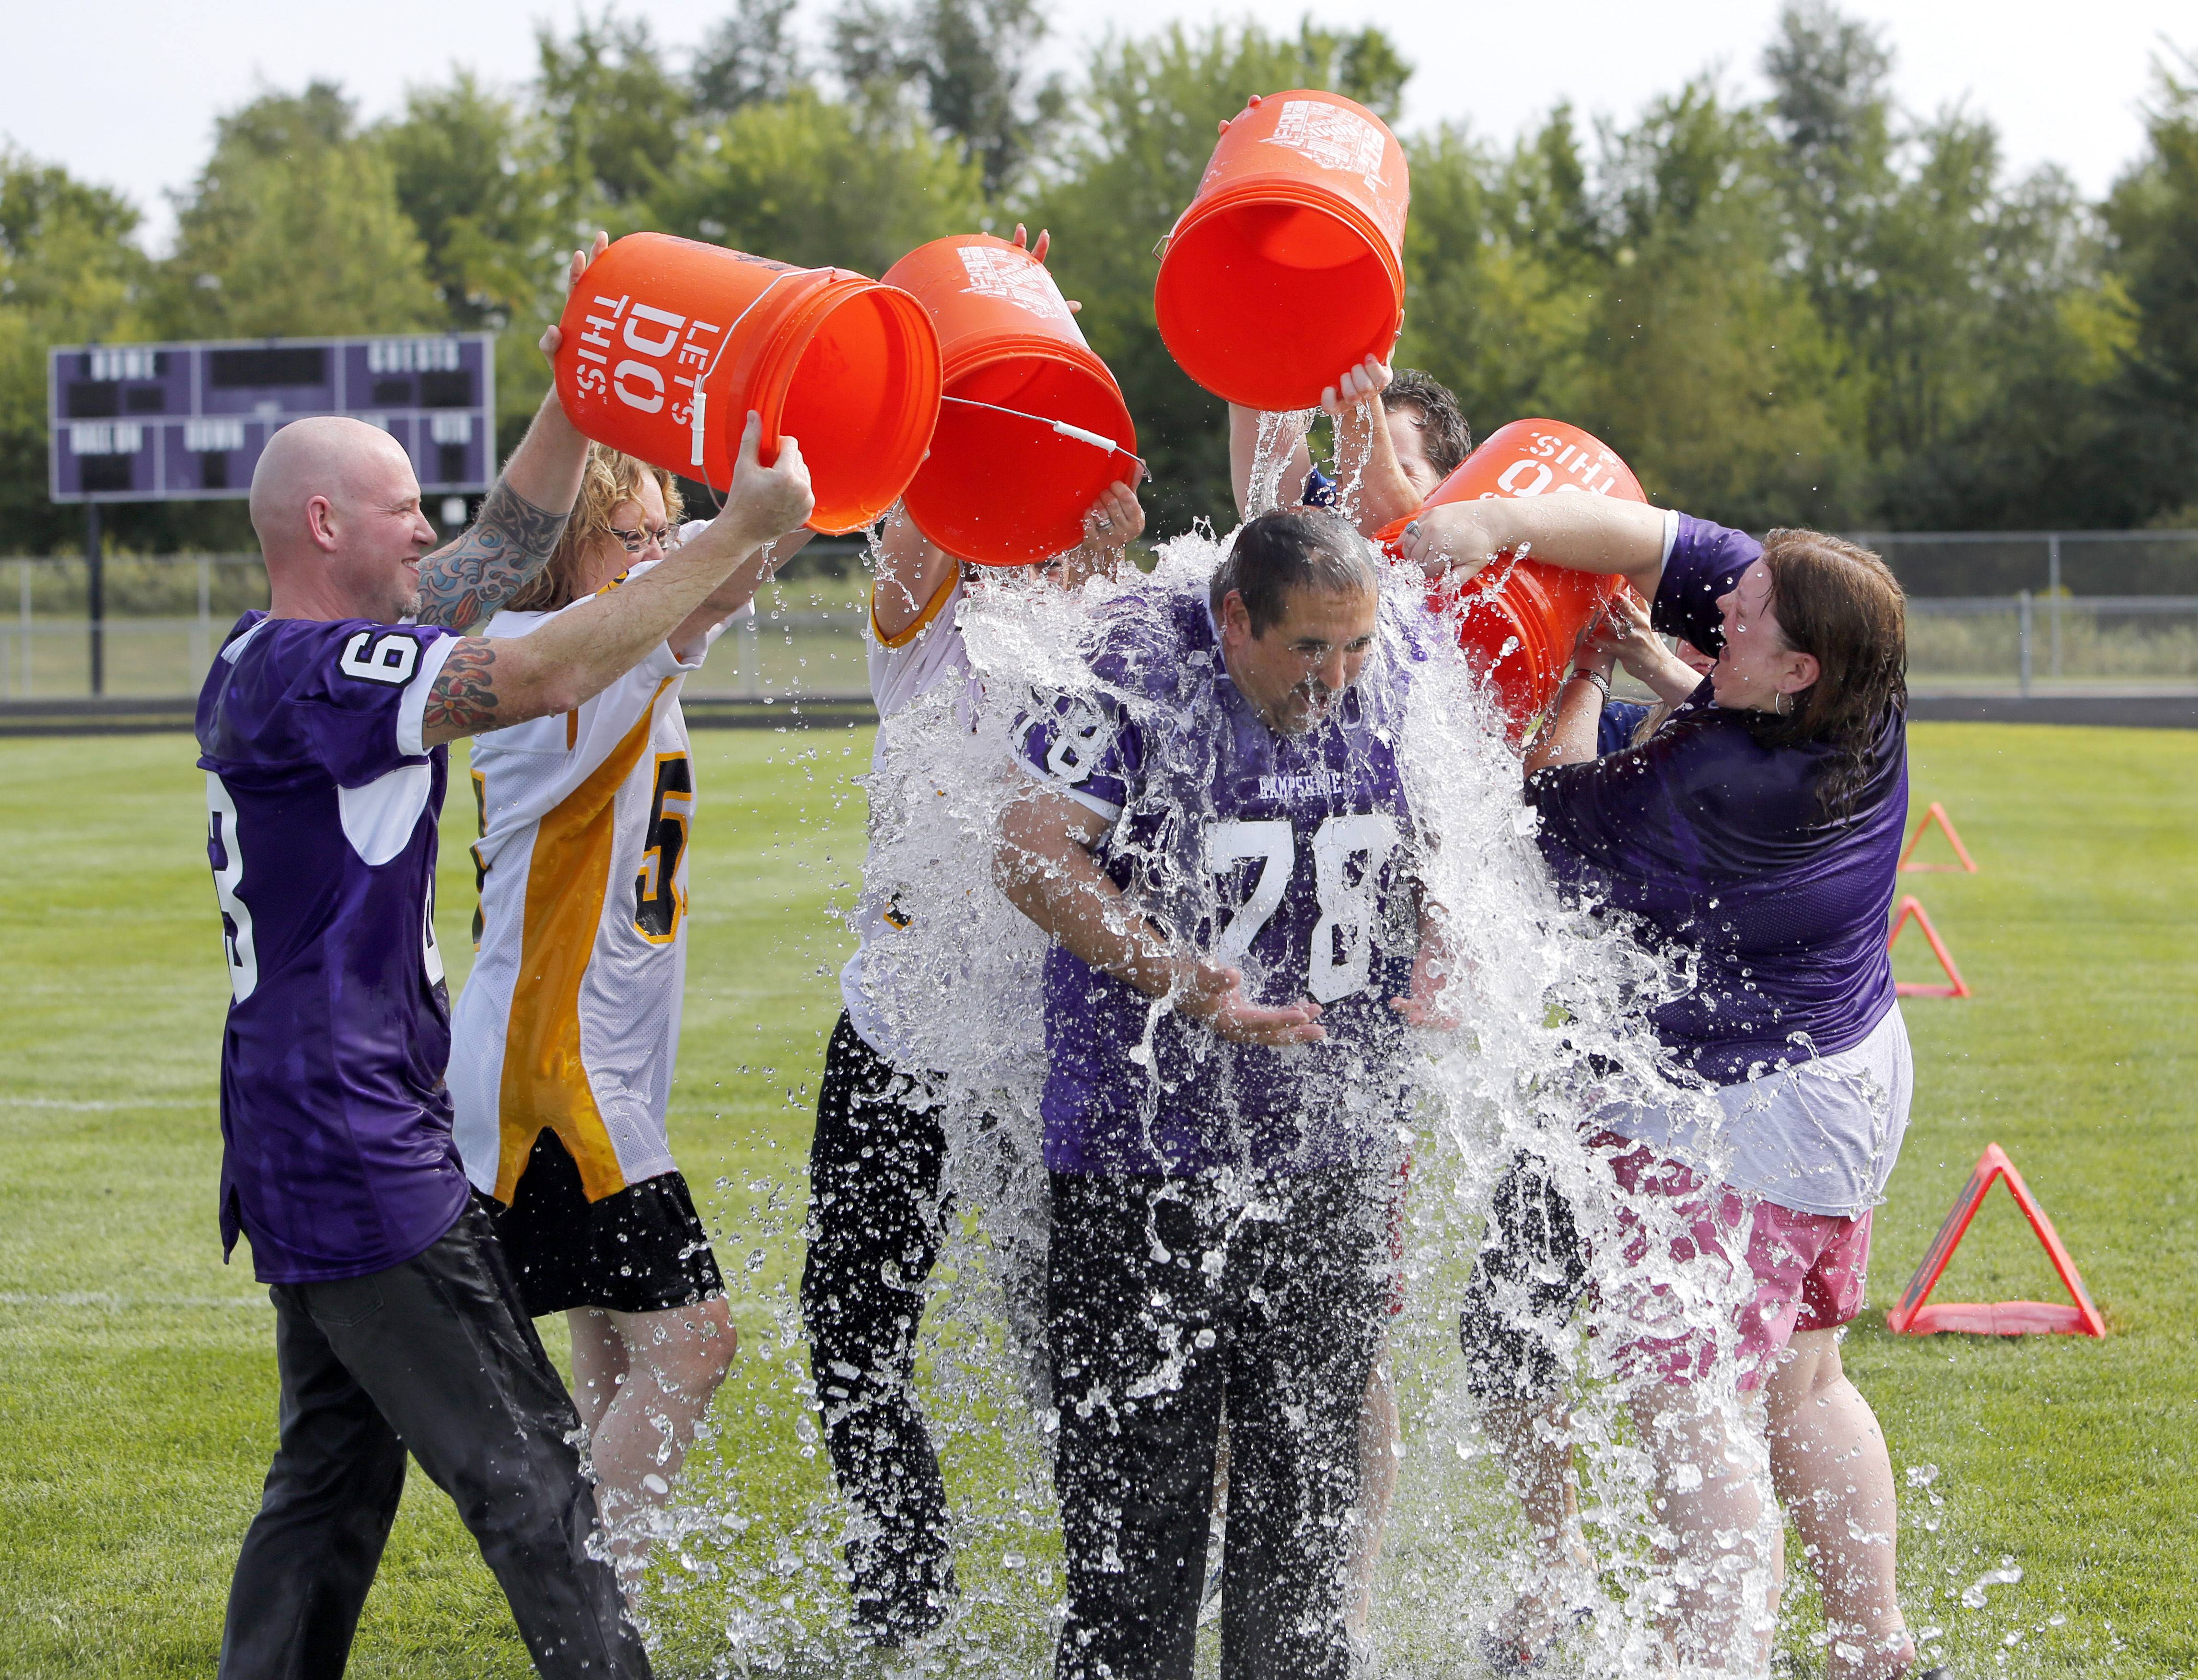 District 300 CEO and future Superintendent Fred Heid, center, is doused with four 5-gallon buckets of ice water by the administrators who also took the ALS ice bucket challenge Friday at Hampshire High School.